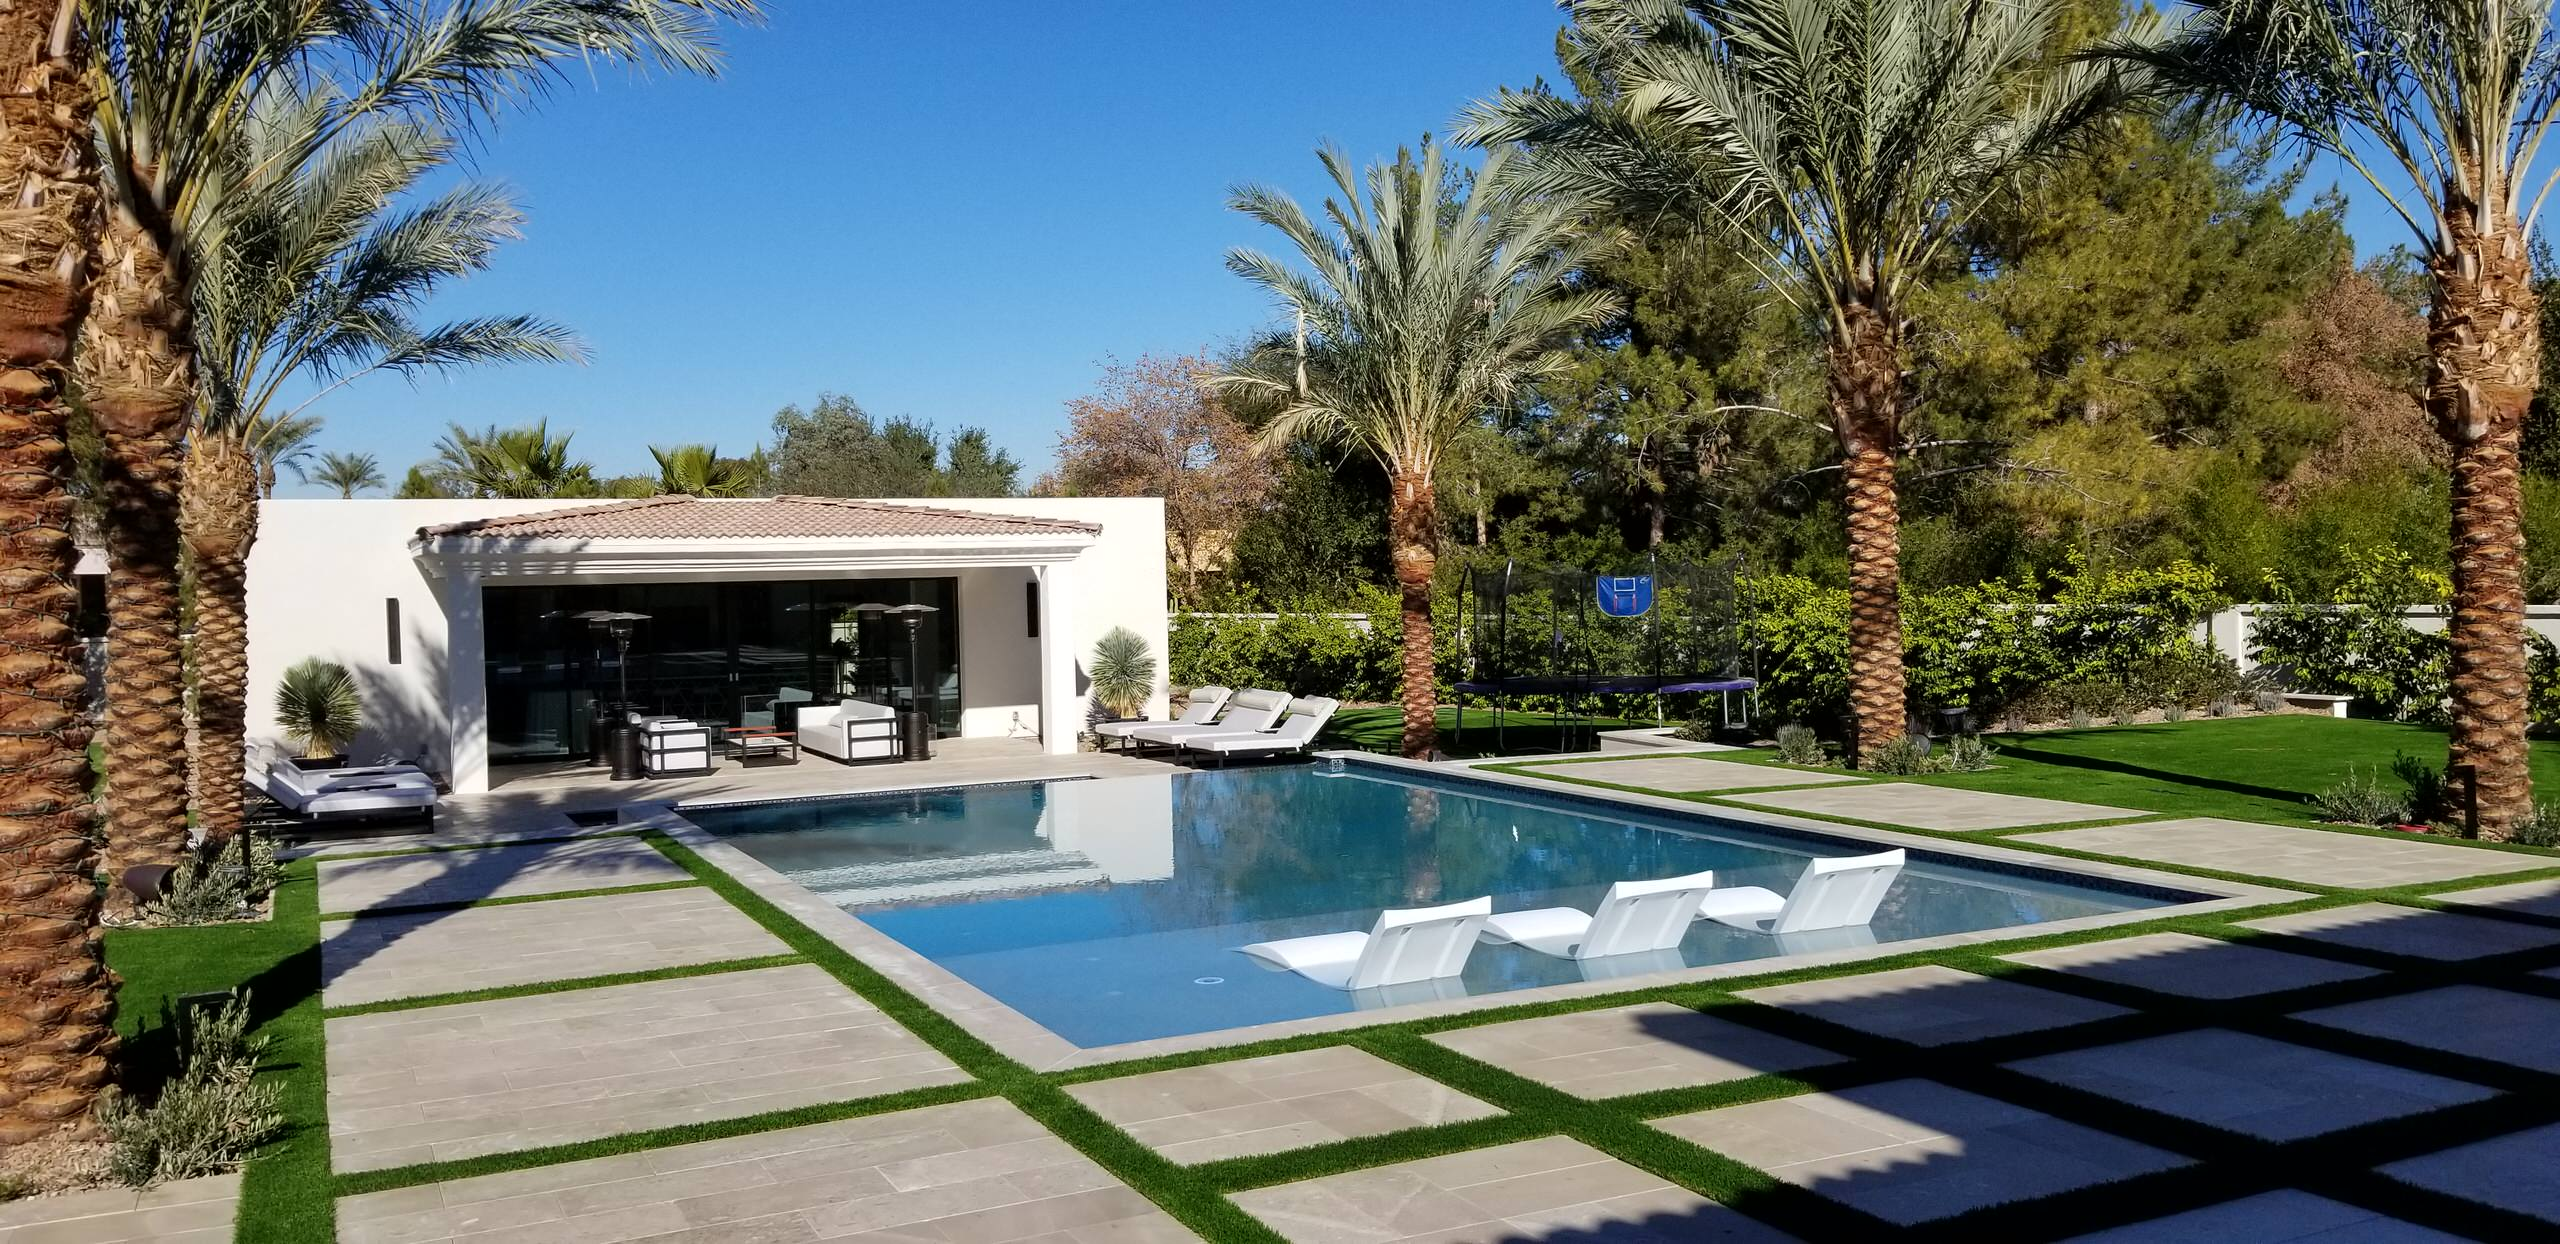 Inspiration for a large contemporary backyard stone and rectangular lap pool house remodel in Phoenix